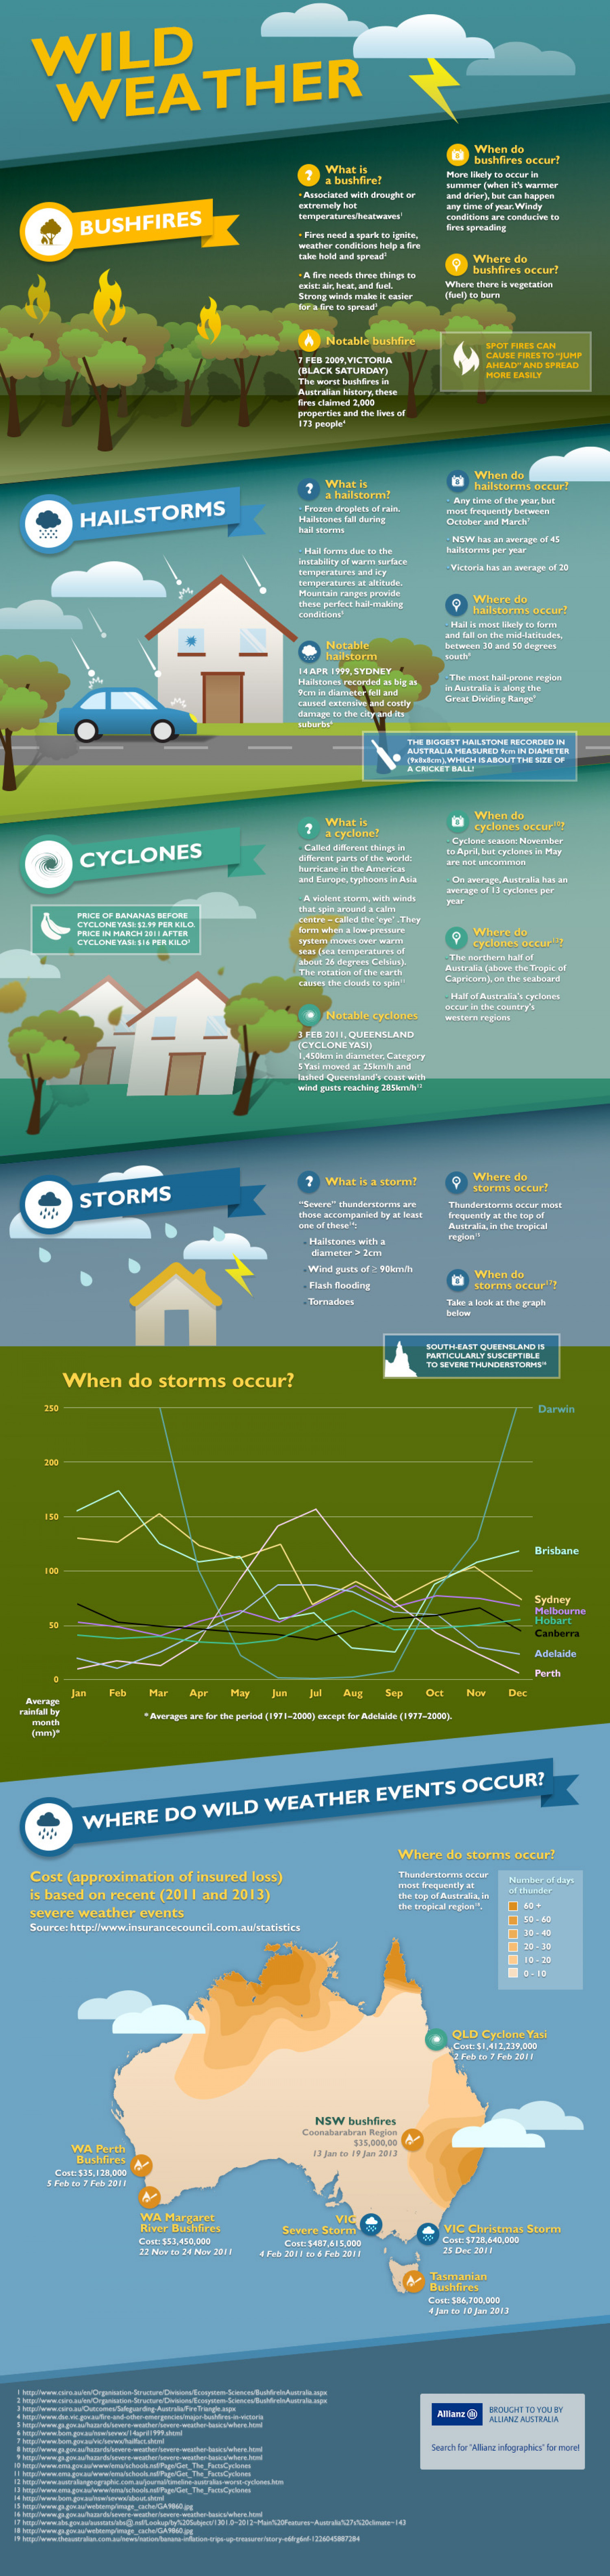 Wild weather Infographic